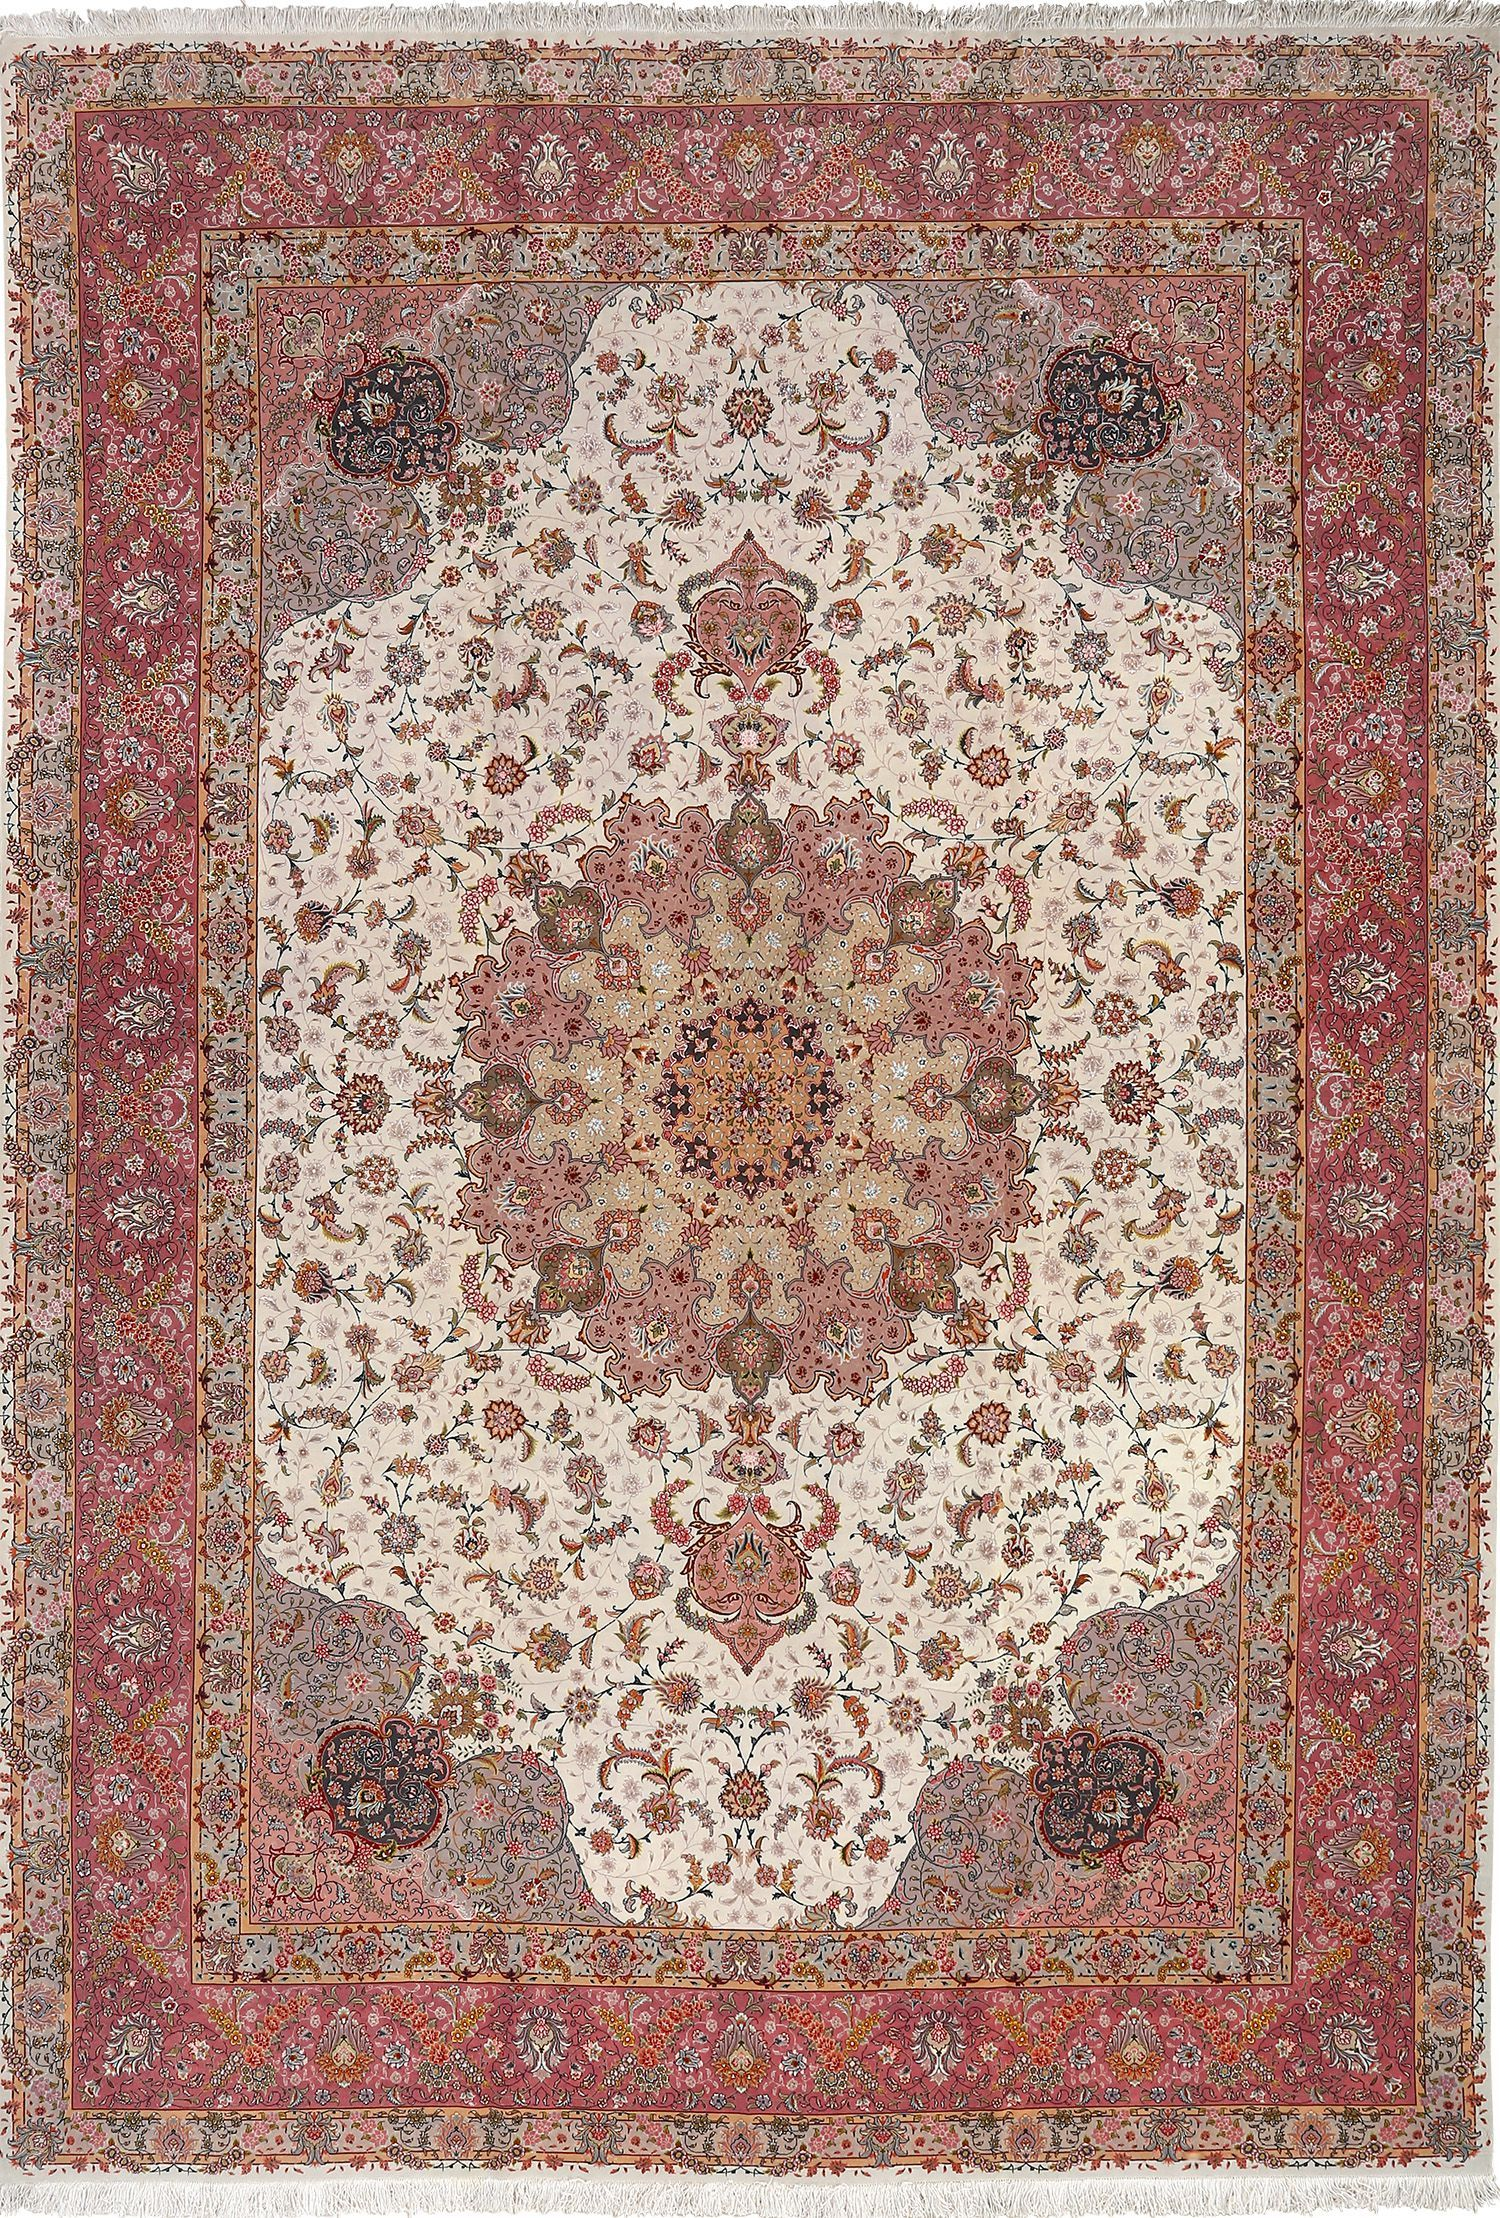 Click Here To View This Intricate And Fine Large Vintage Tabriz Persian Rug 51068 Available For